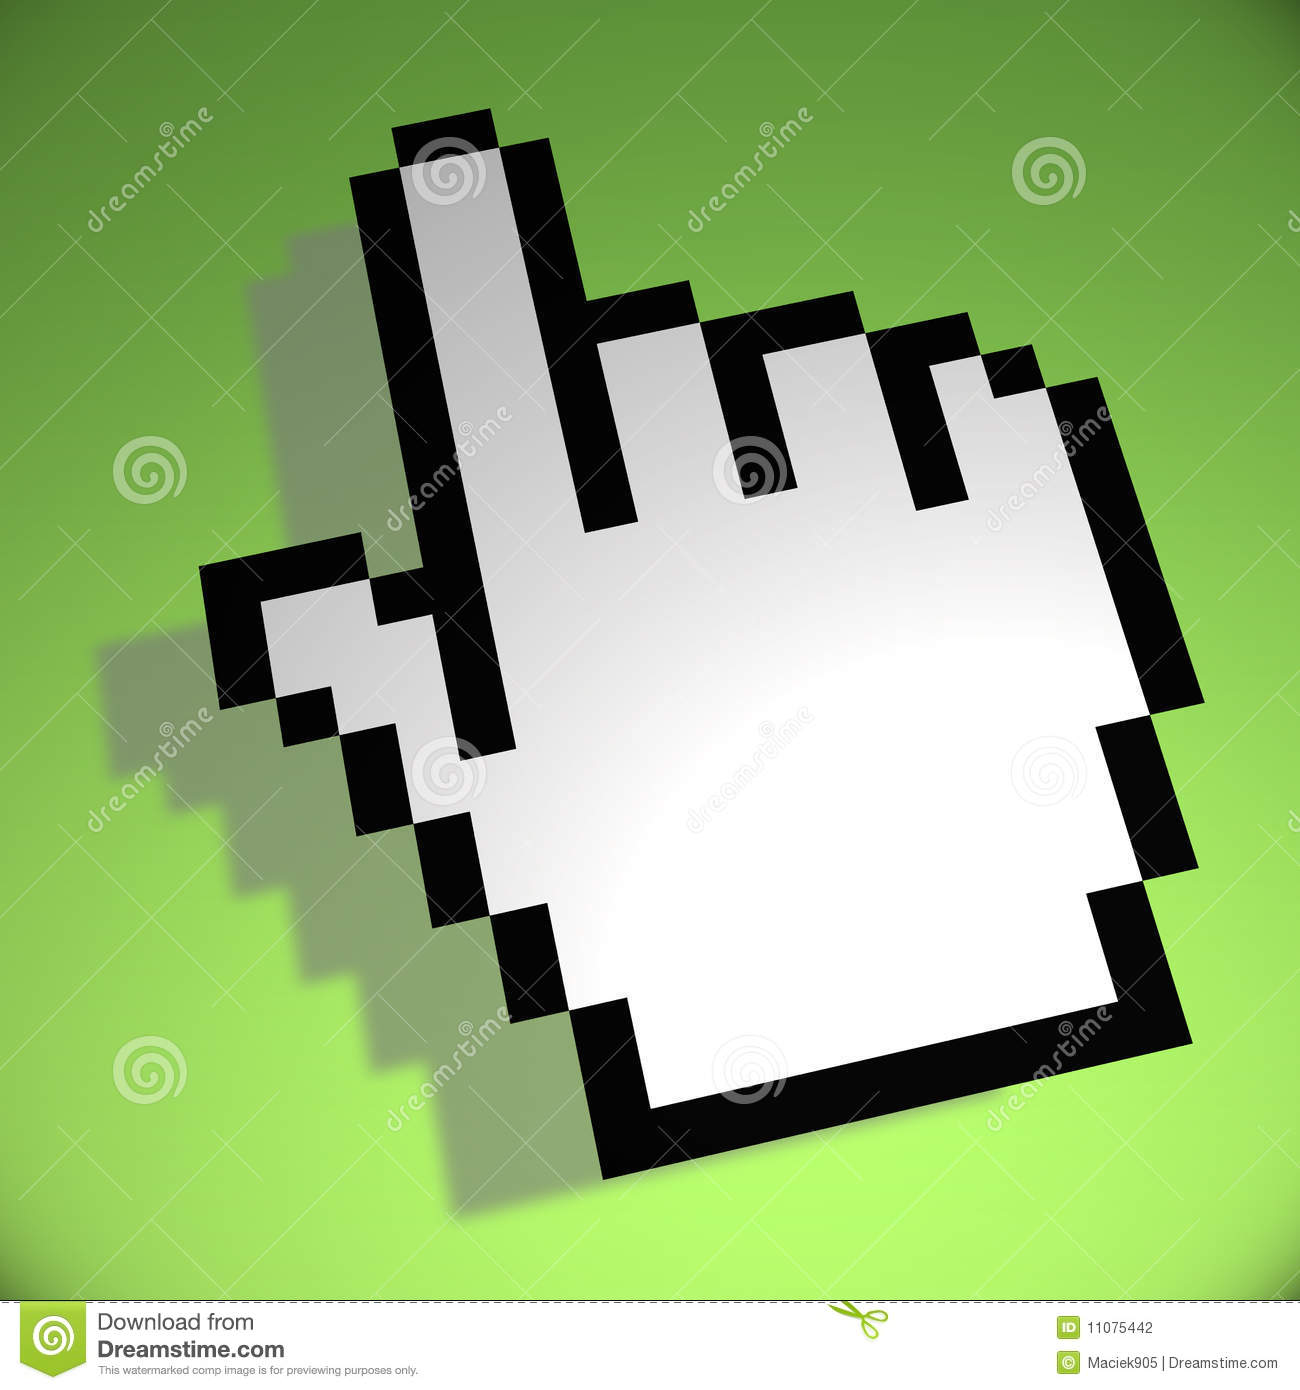 Mouse hand cursor on green background